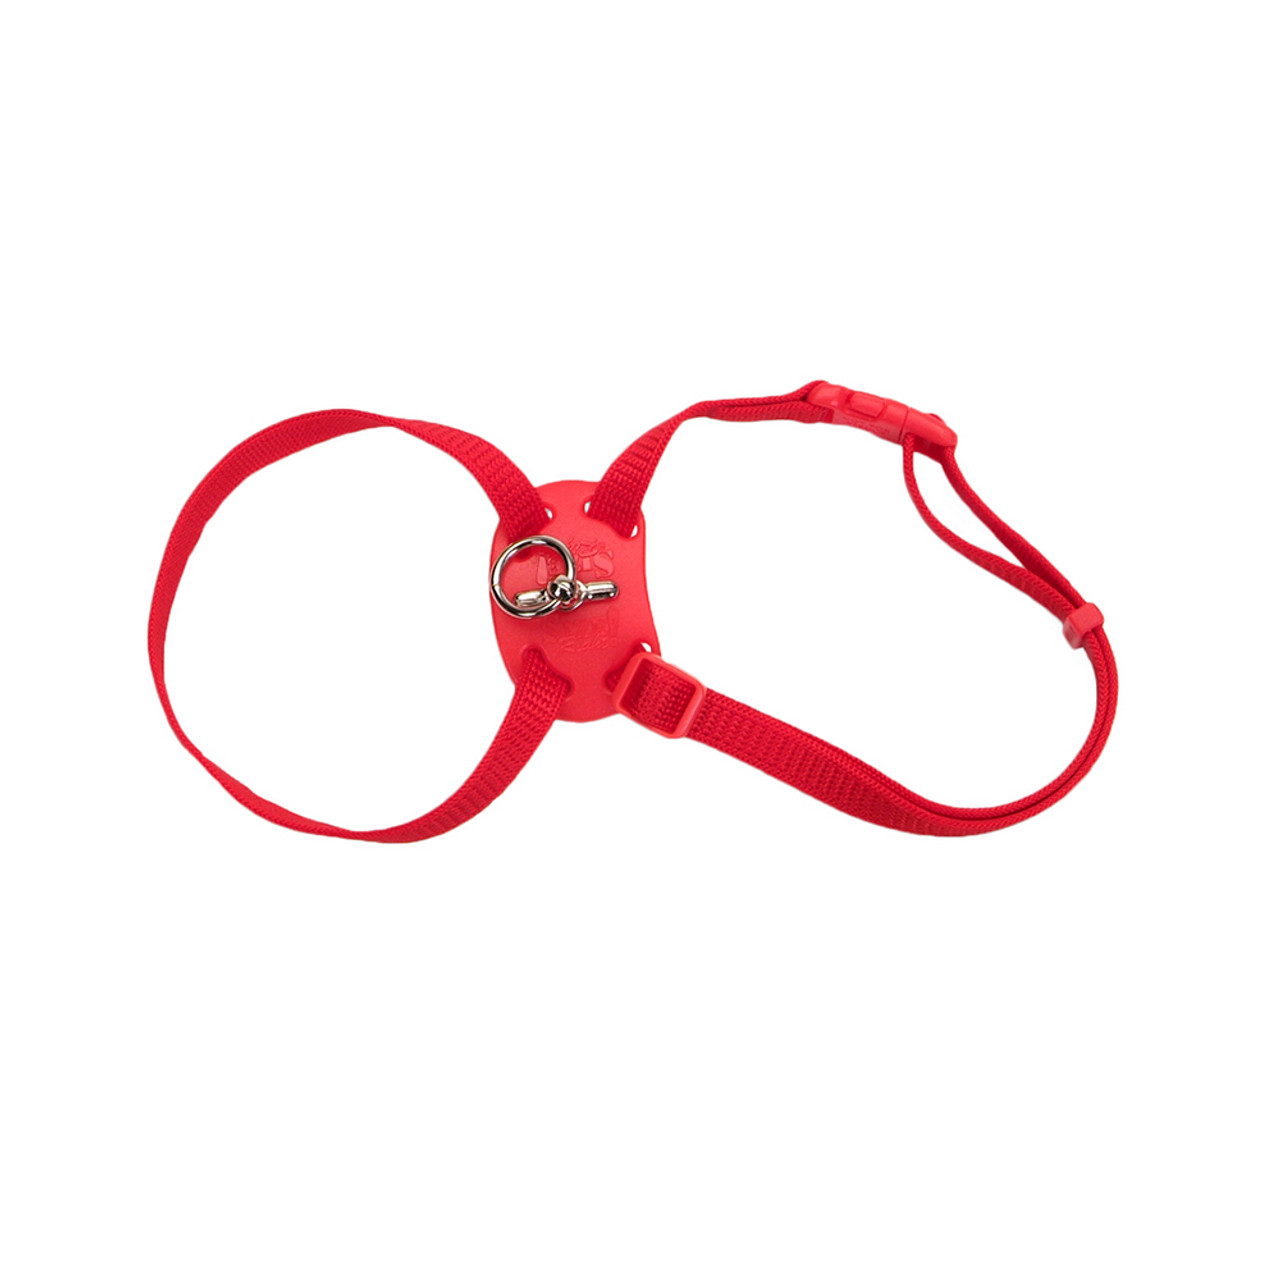 Coastal Size Right Snag-Proof Red Adjustable Cat Harness